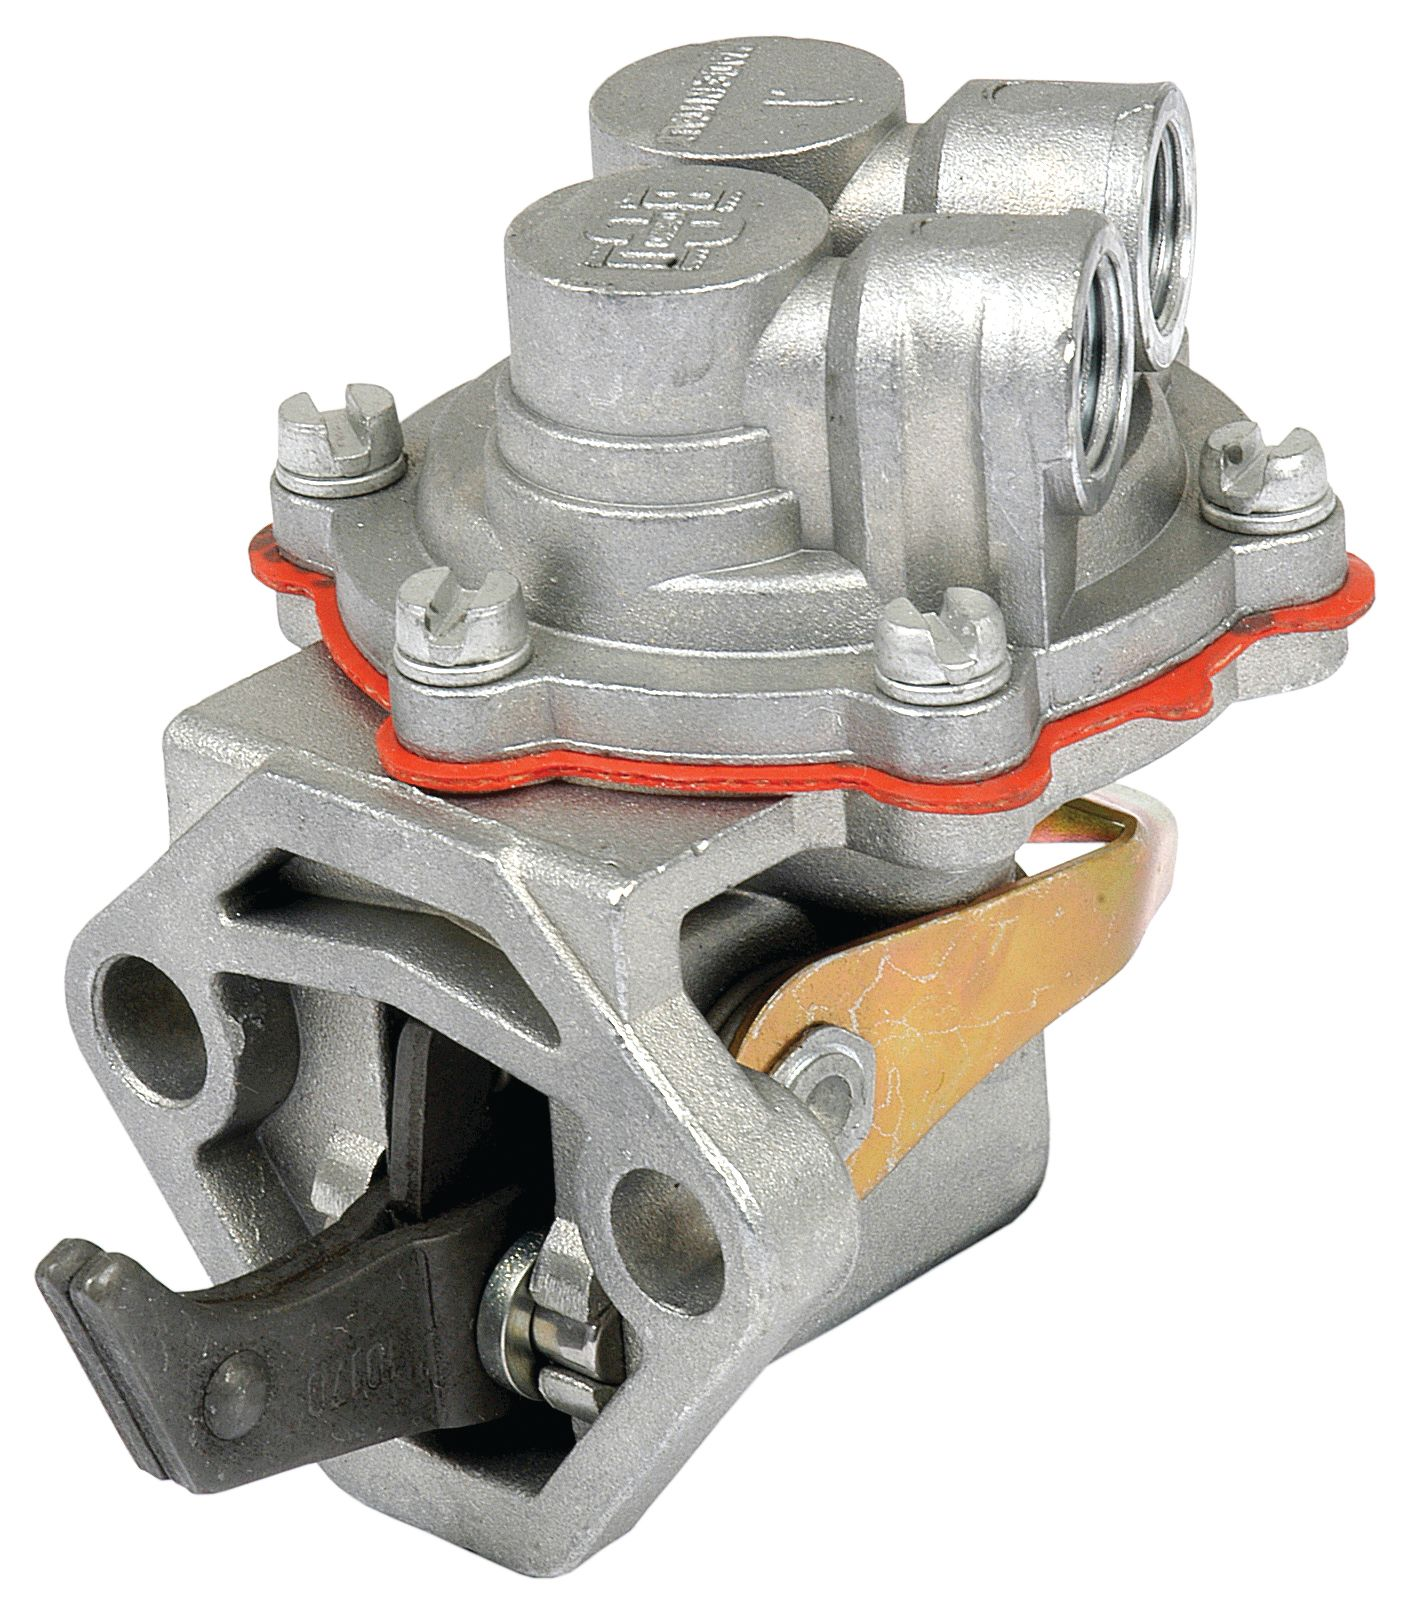 LEYLAND FUEL PUMP (2 HOLE) 40559